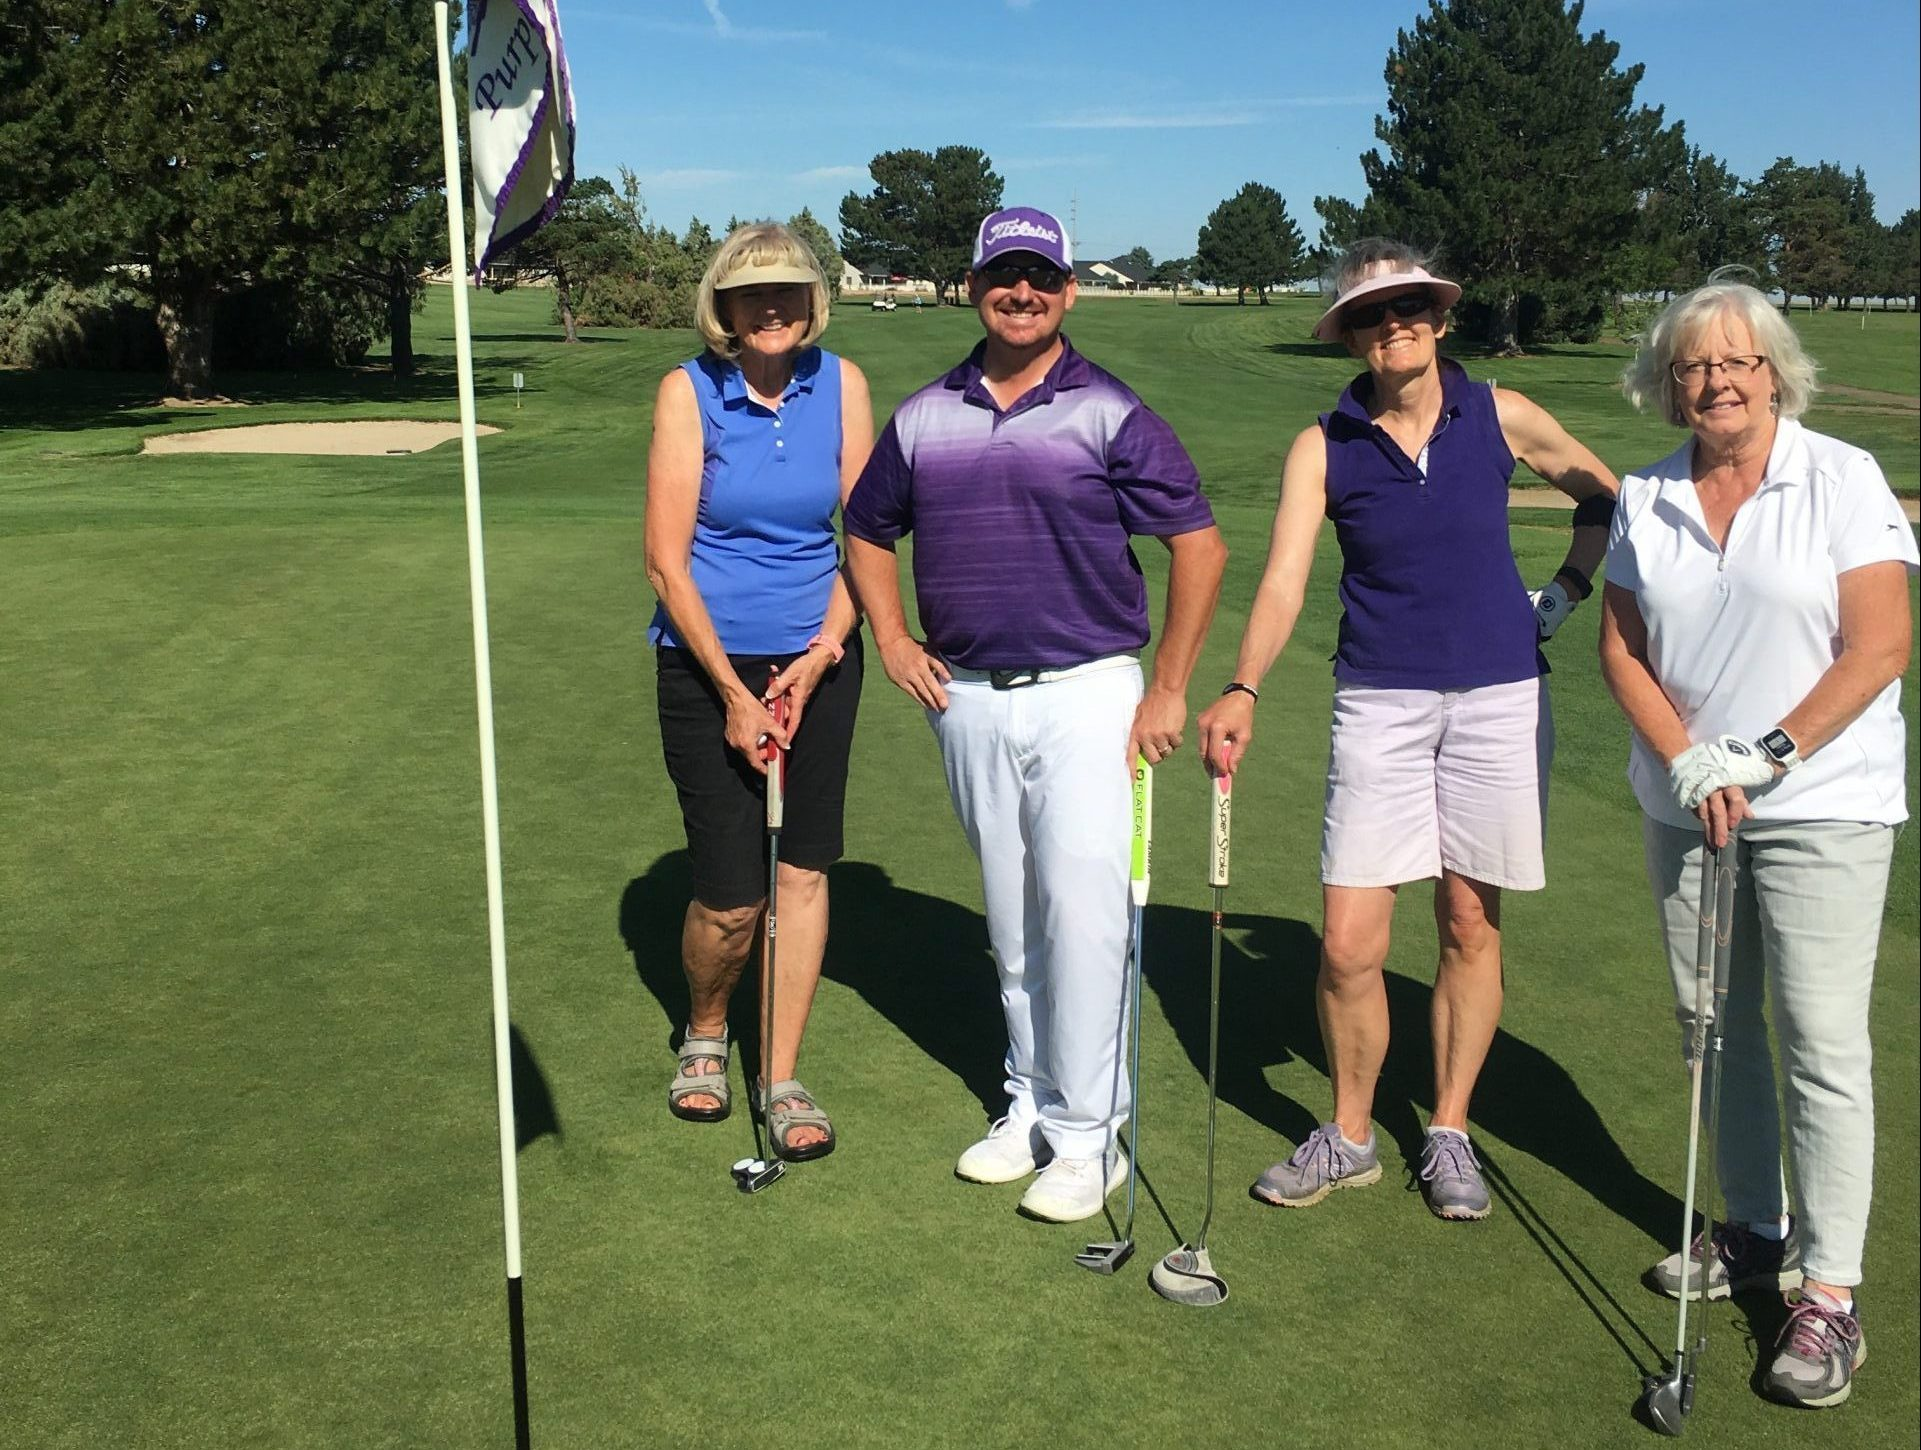 Coach Pete golfing with the ladies